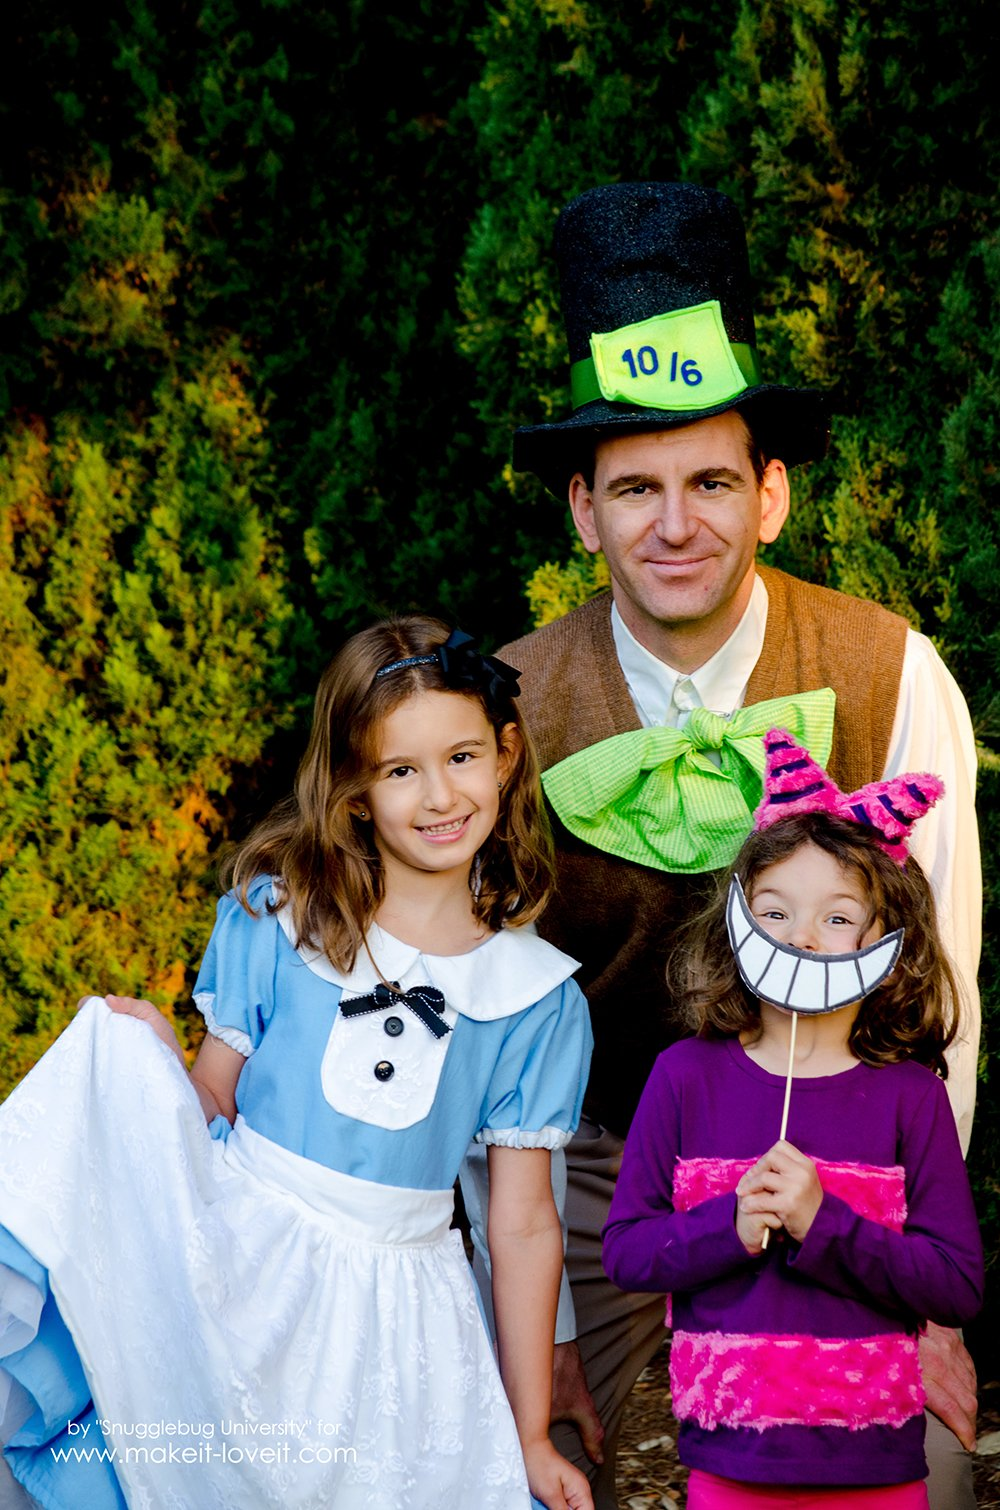 Alice In Wonderland Costumes - For The Whole Family! | via www.makeit-loveit.com